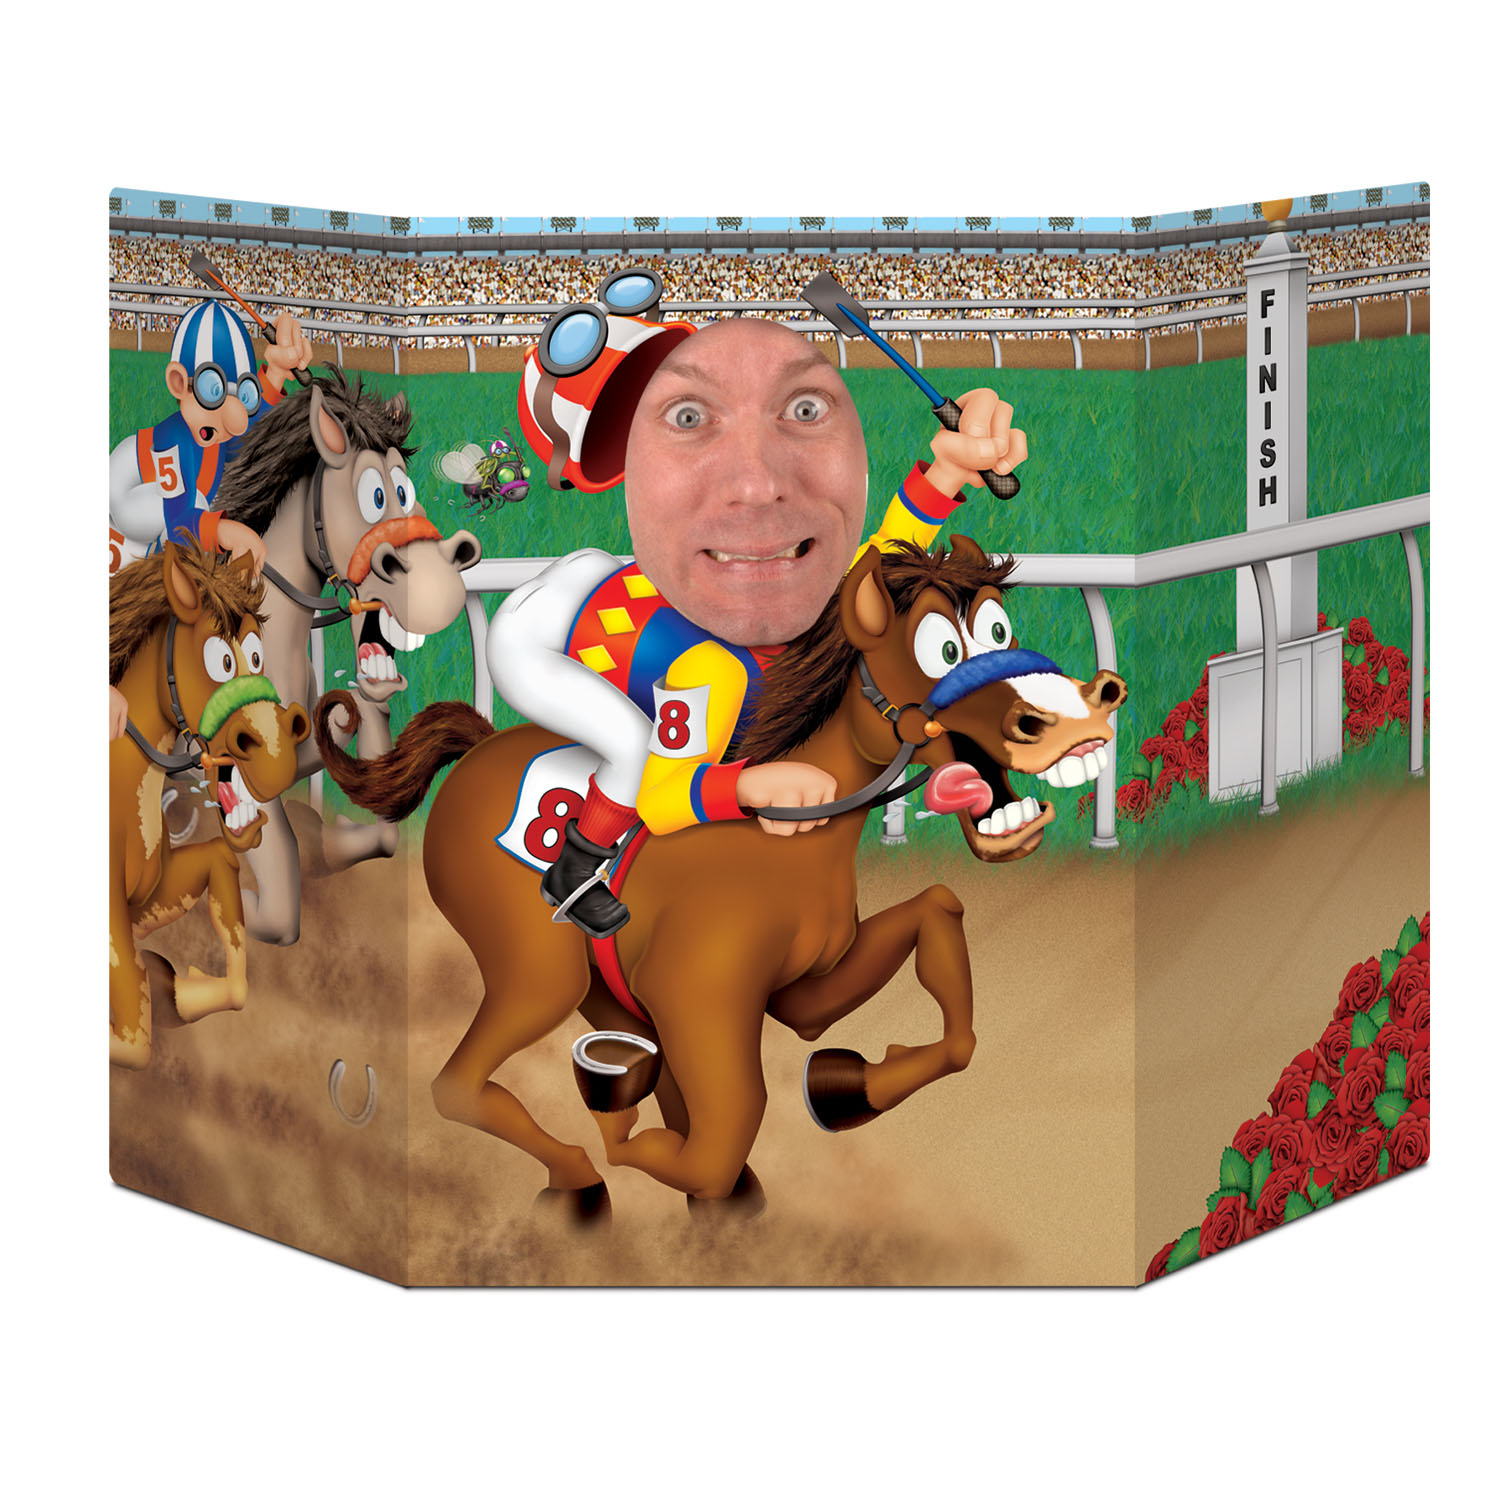 Horse Racing Photo Prop (Pack of 6) Pitures, derby day, photo prop, horses, jockeys